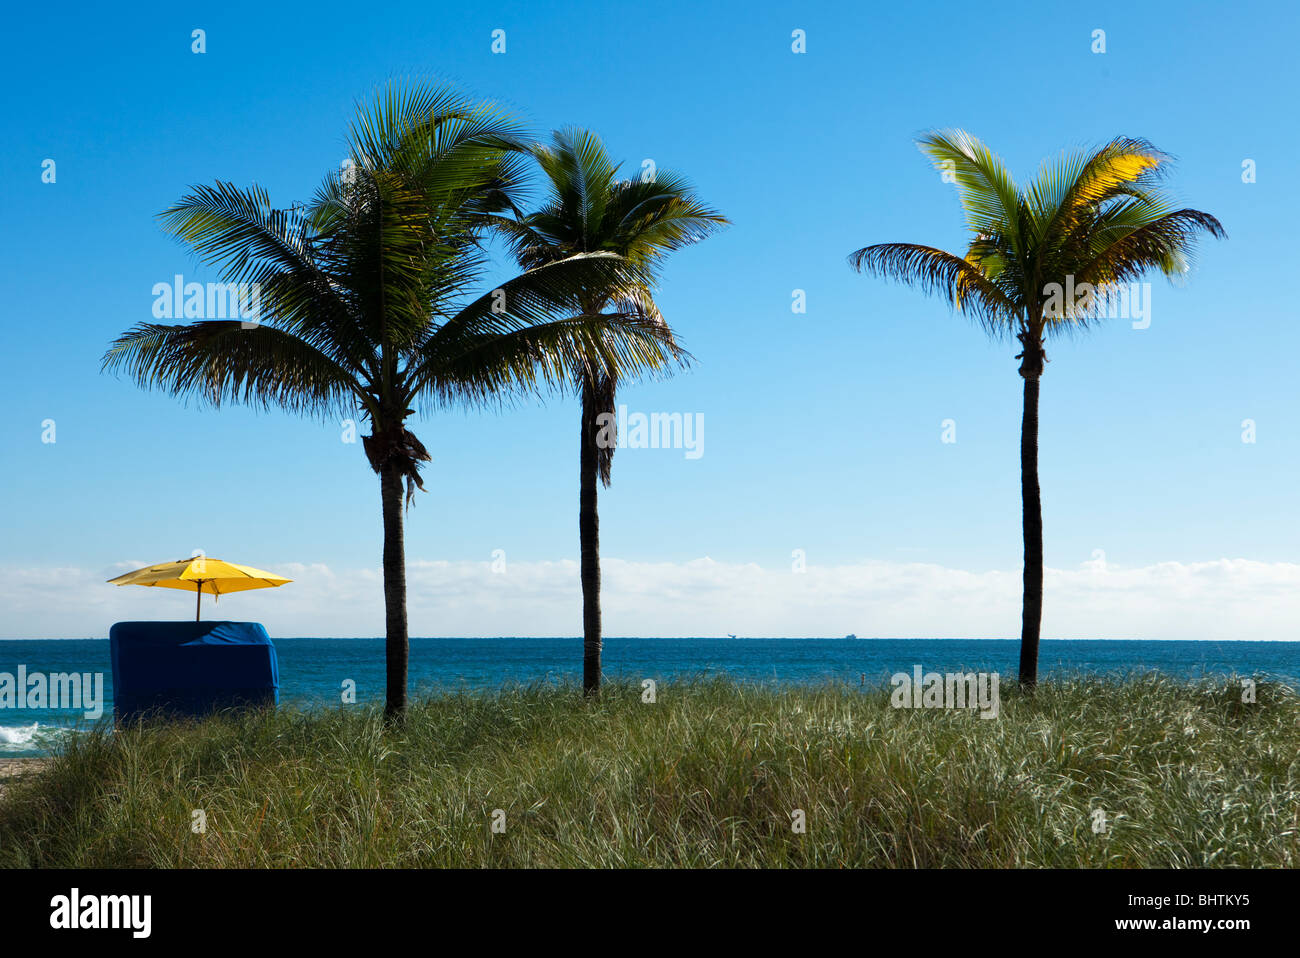 A single umbrella on the beach located next to three palm trees provides solitude and quiet during vacations. - Stock Image